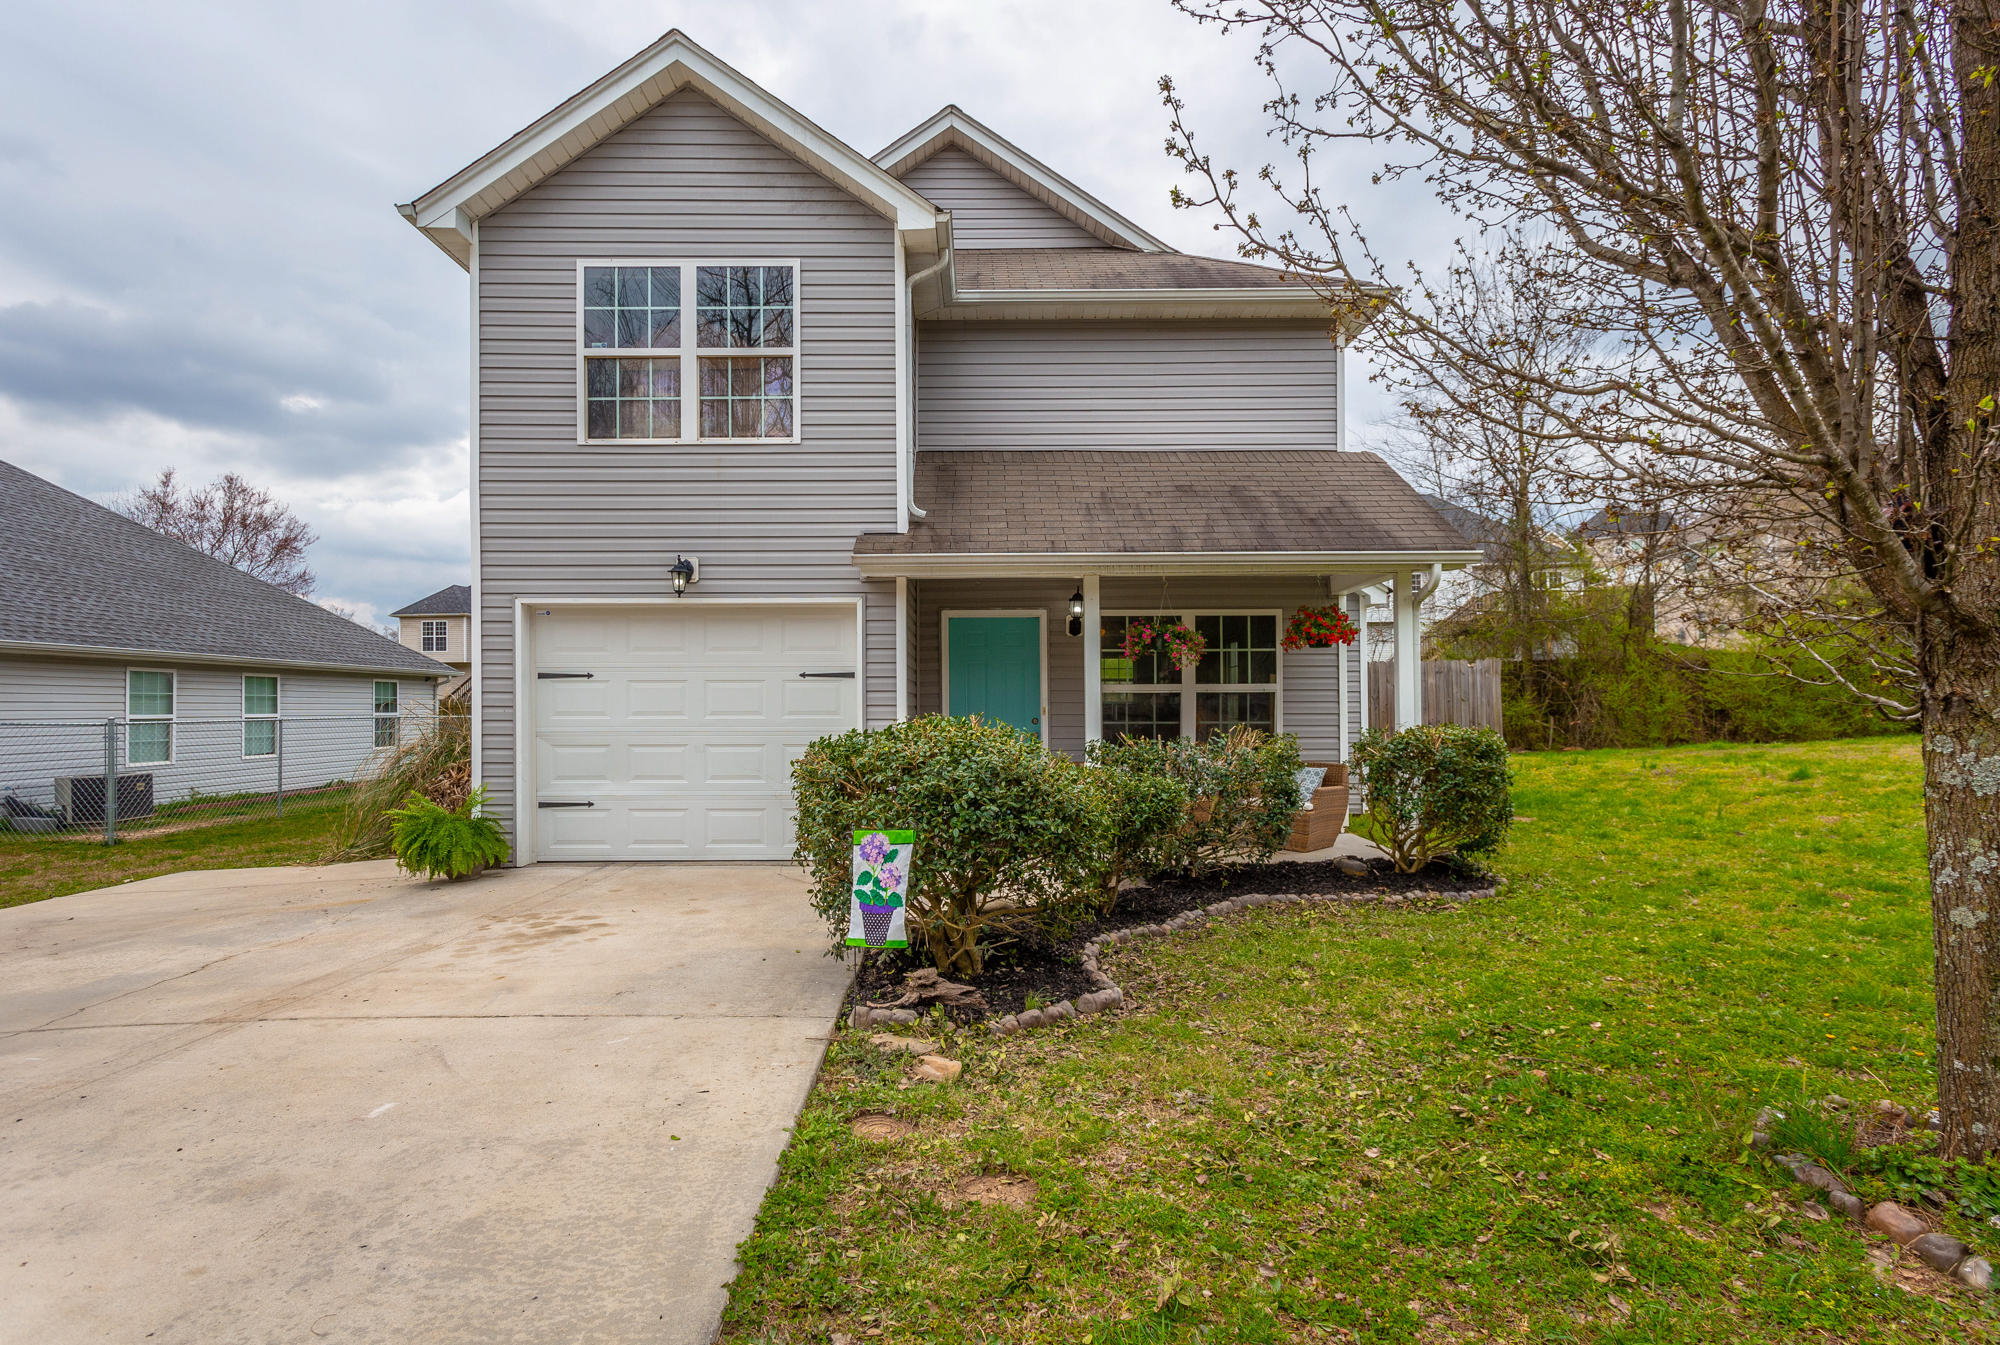 8344 Old Cleveland Pike, Ooltewah, TN 37363